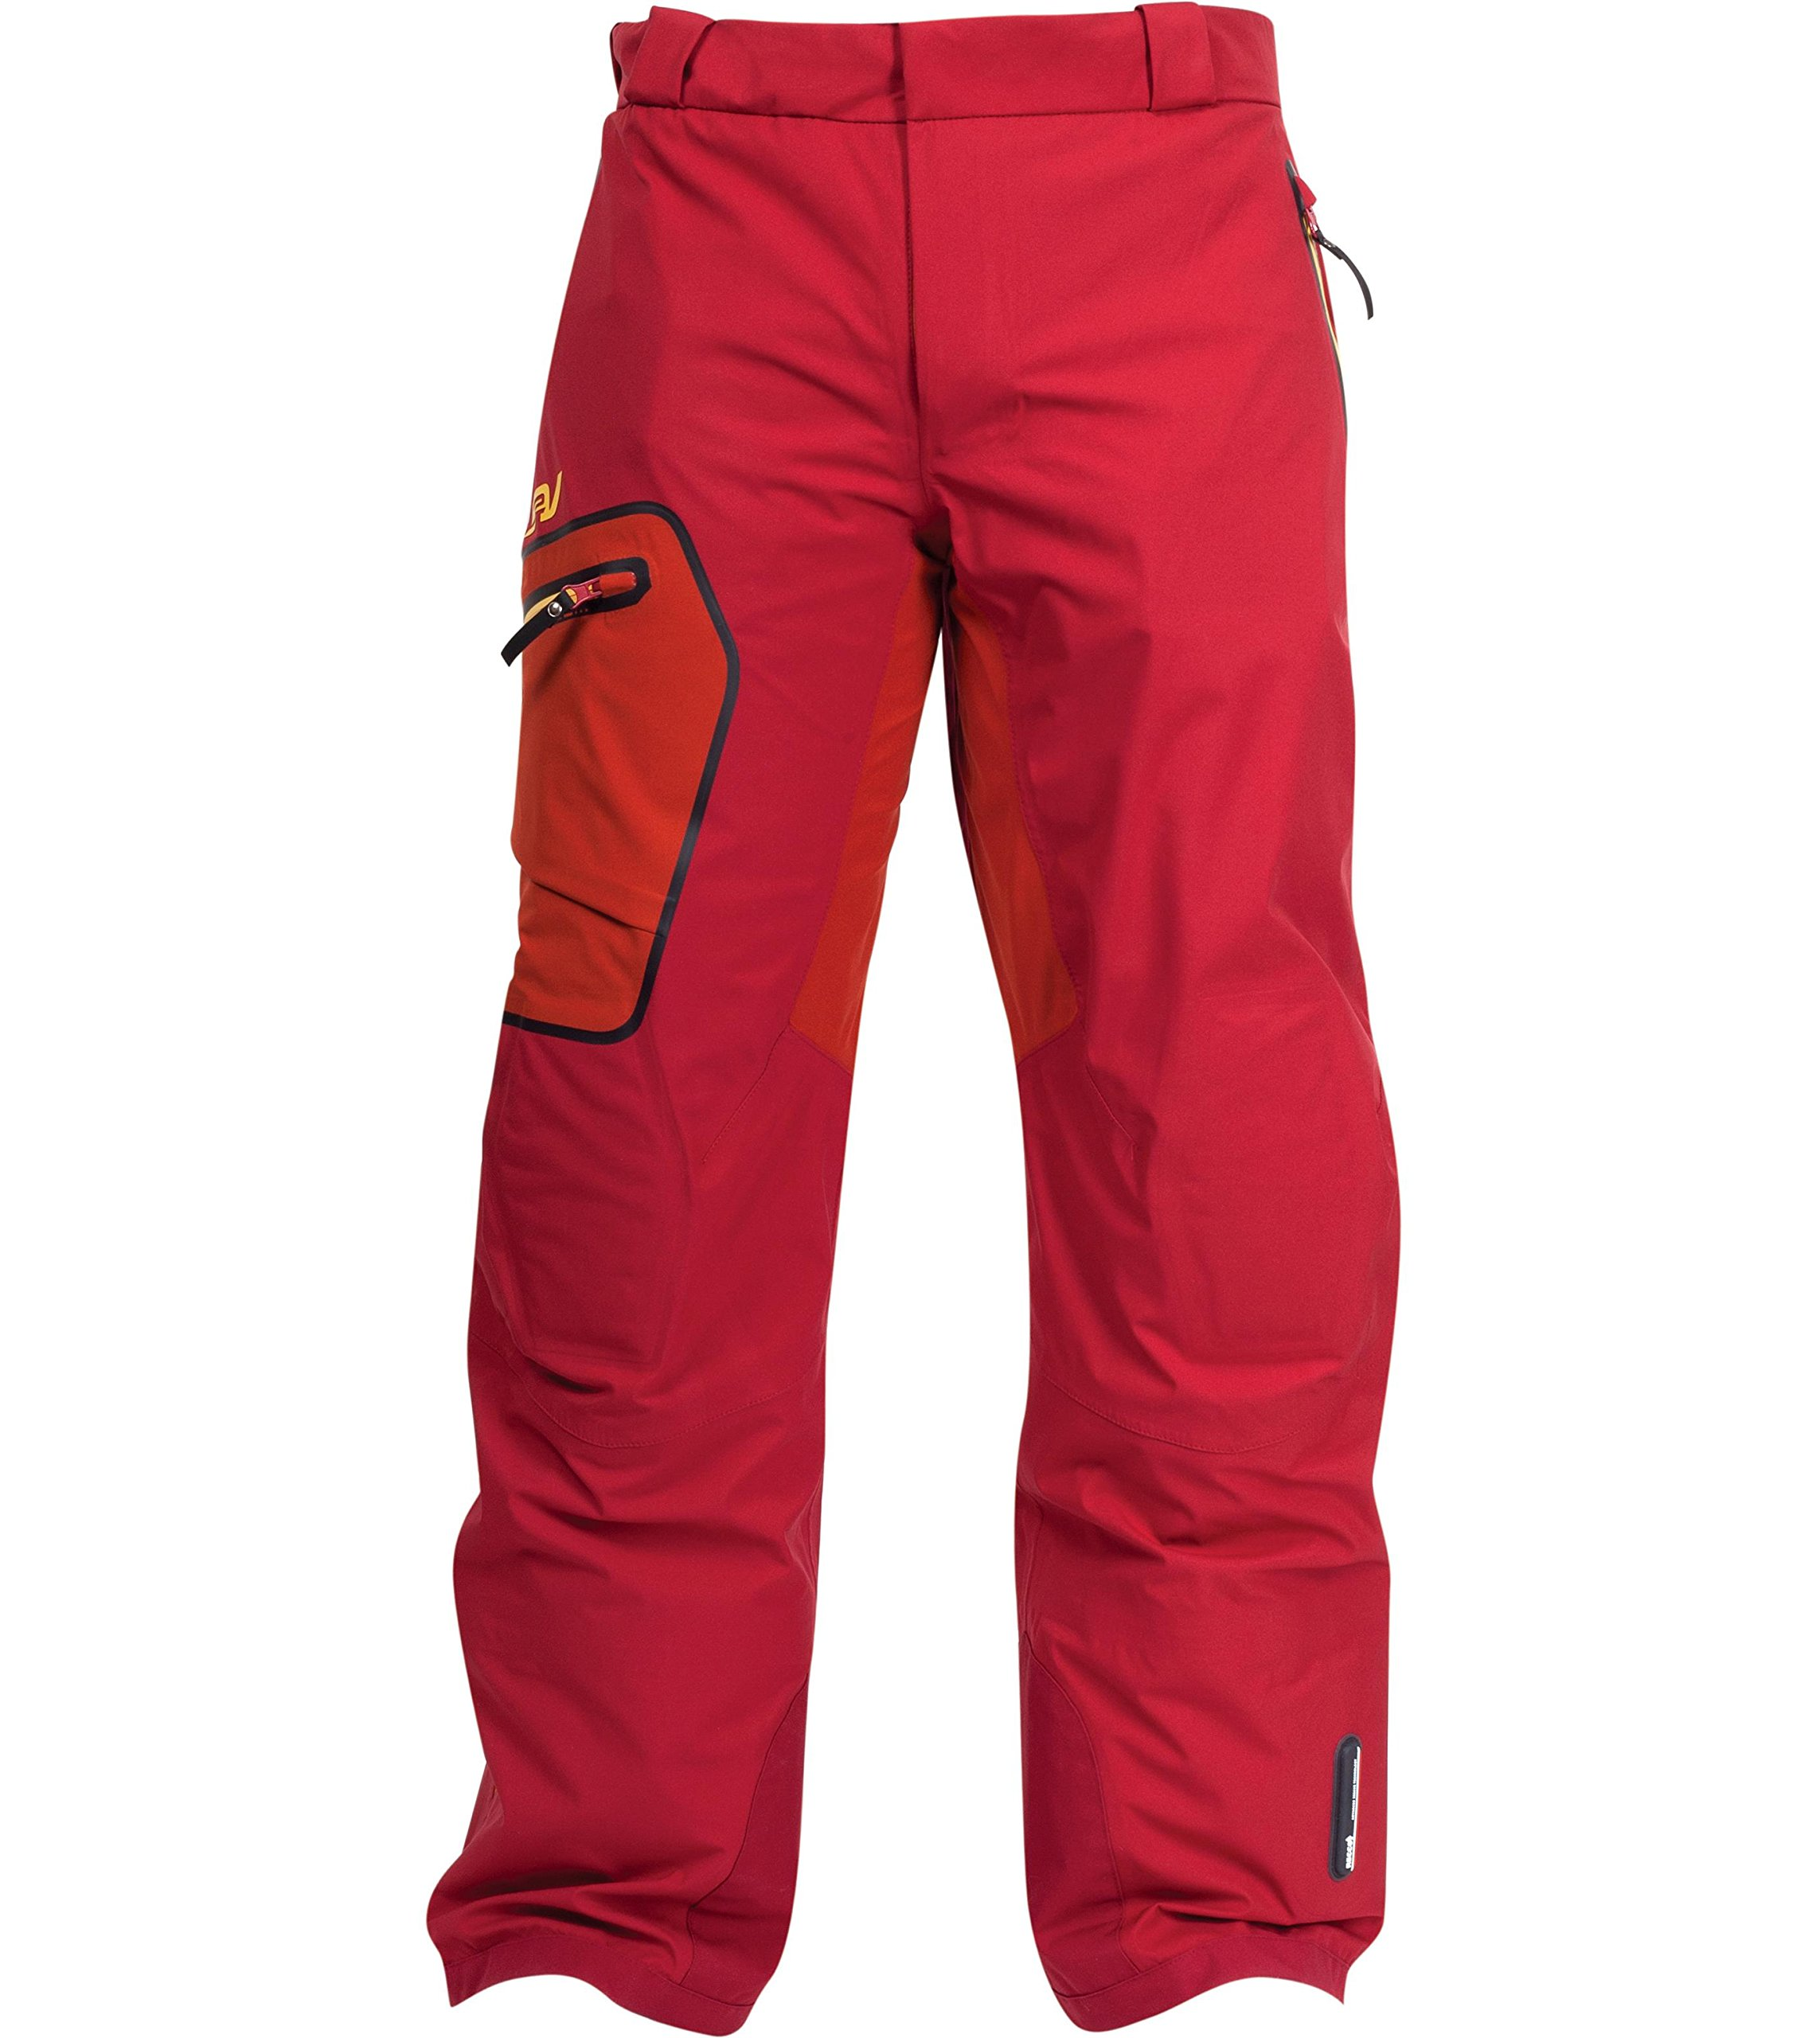 Rocky S2V Men's Provision Pant X-Large Red